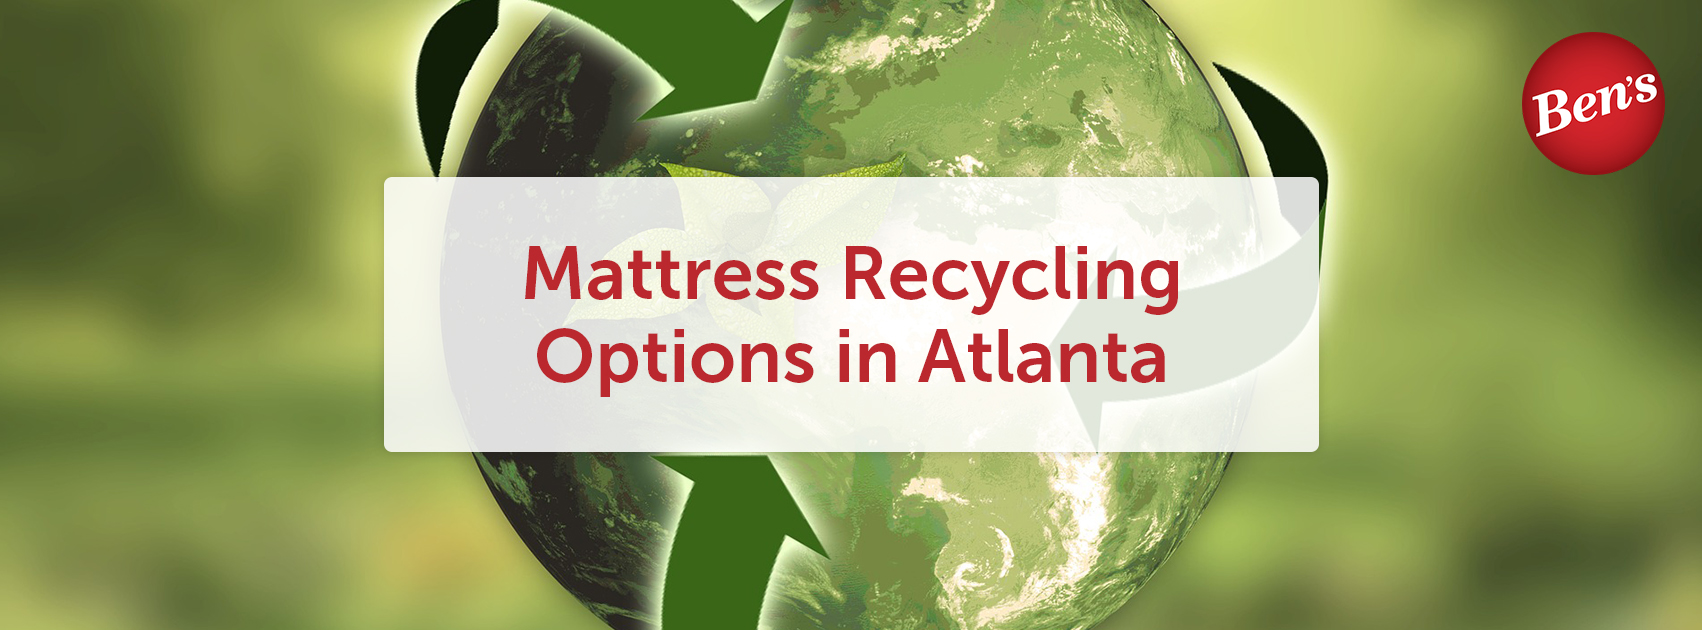 Mattress Recycling Options In Atlanta Ben S Mattress Furniture